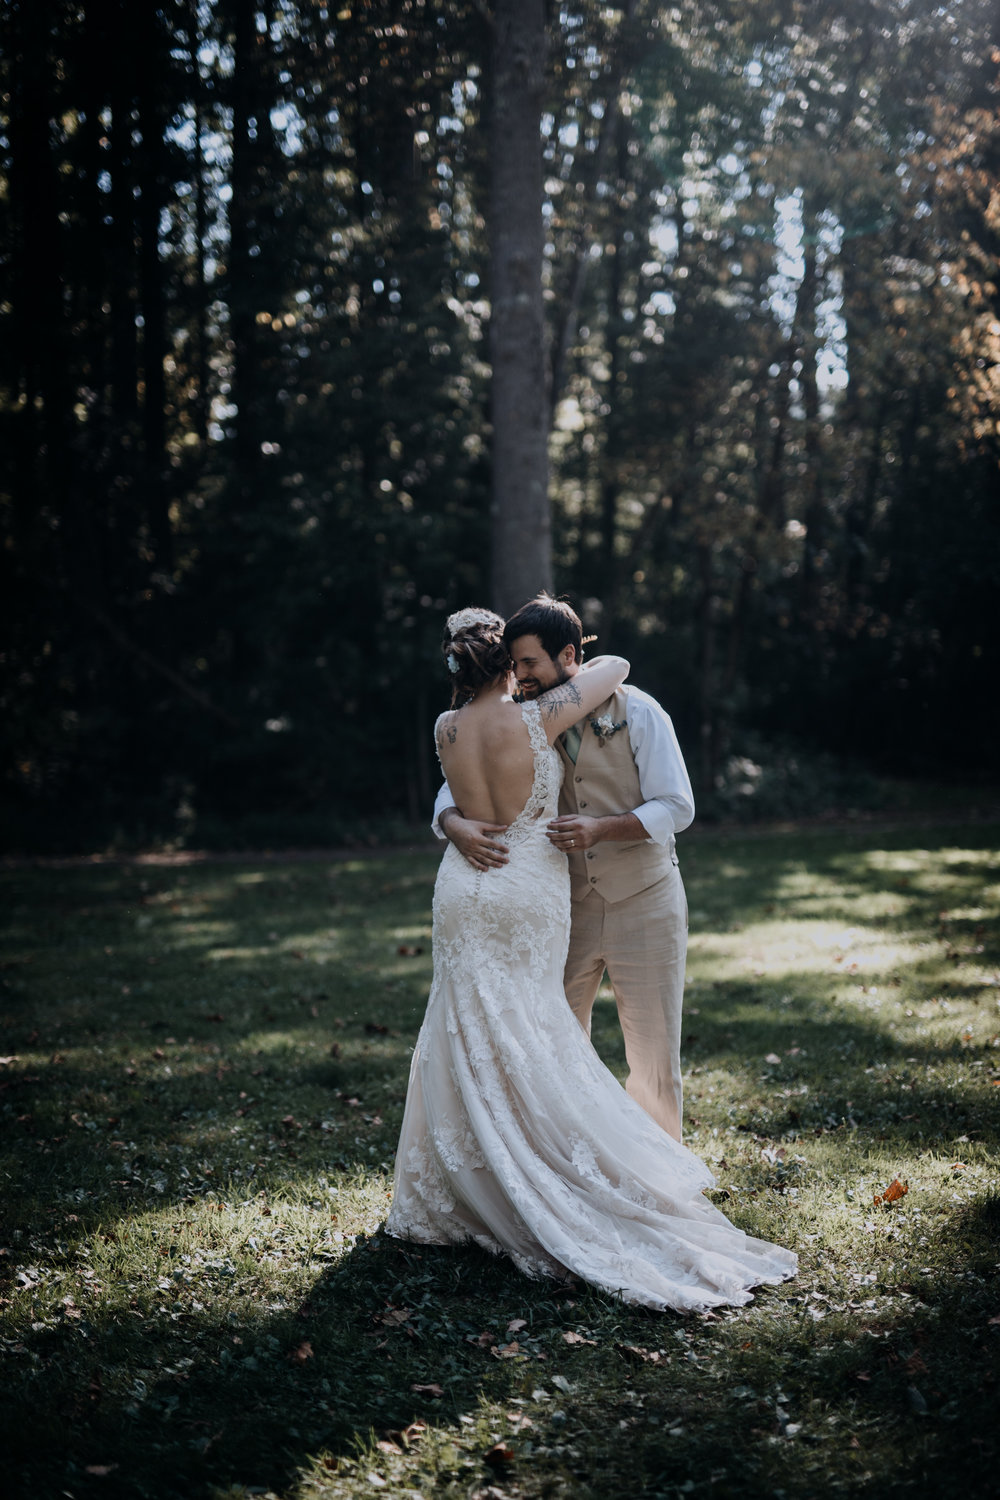 Cambria_Creative_Photographer_York_Camp_Cann-edi-on_wedding-3659.jpg